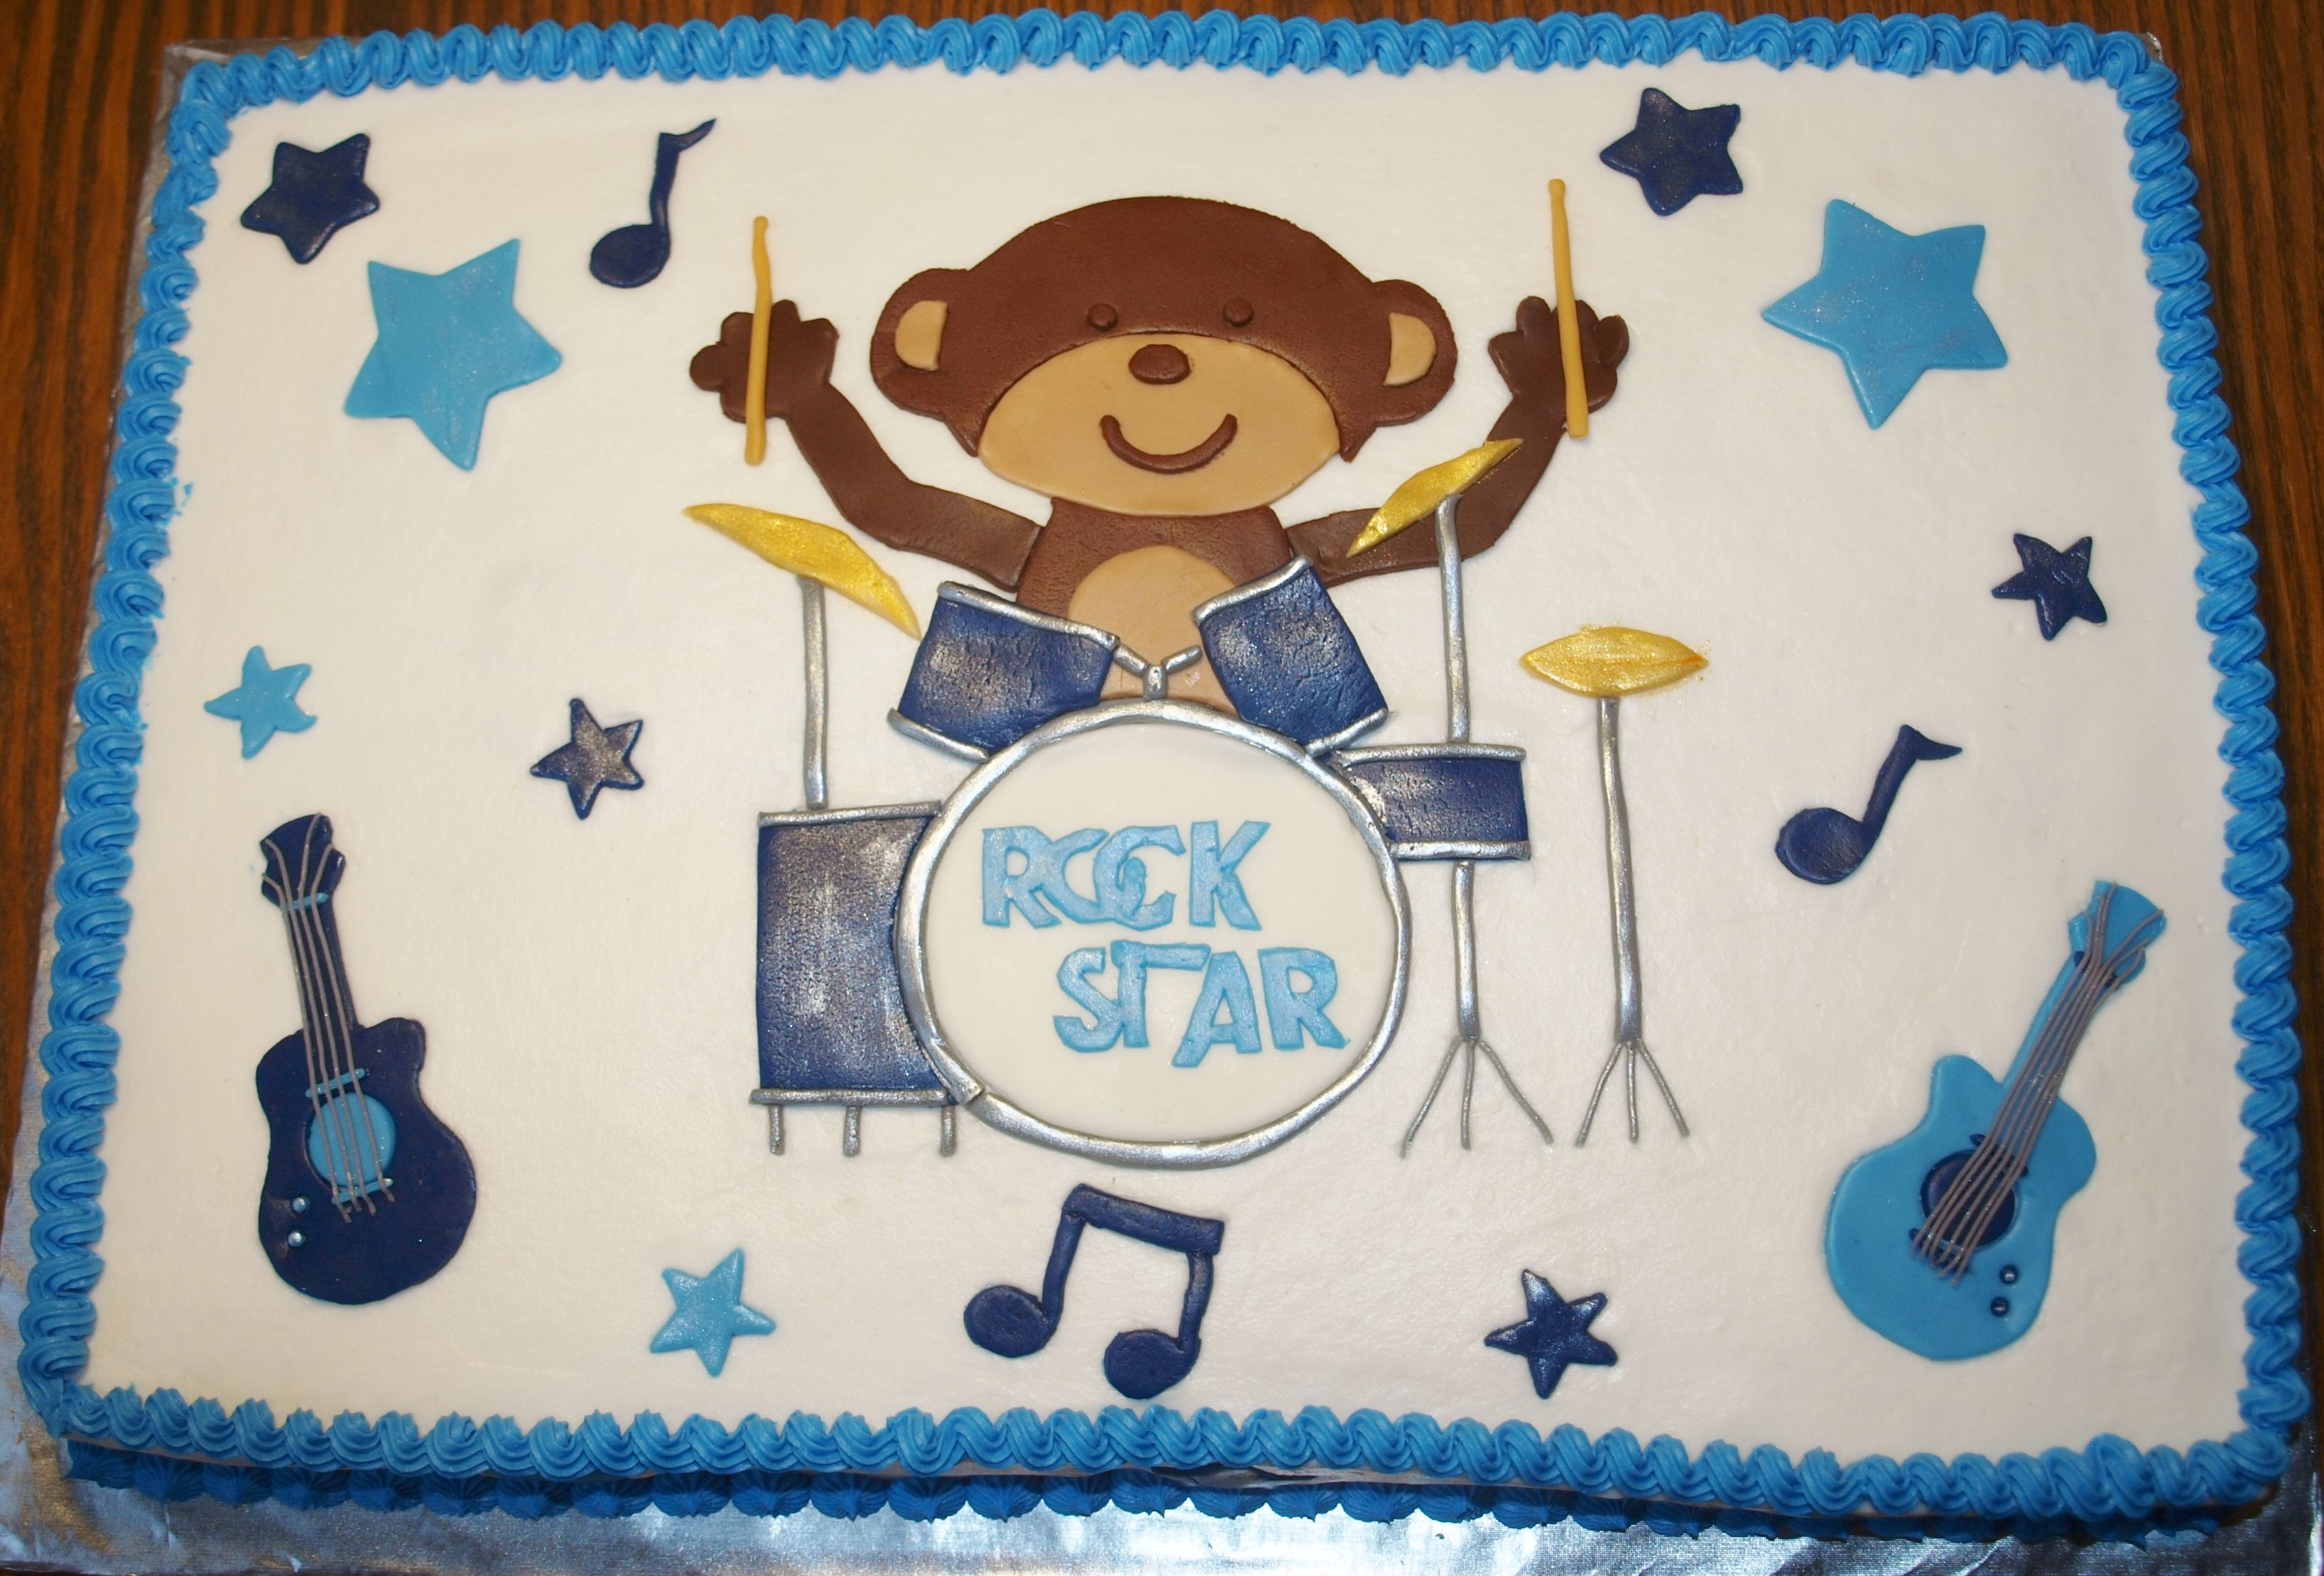 Rock Star Monkey - For a friends baby shower,theme was Rock Star Monkey by Carters. Dad plays drums so I made monkey playing drums instead of guitar. French vanilla cake & frosting, designs are mm fondant.